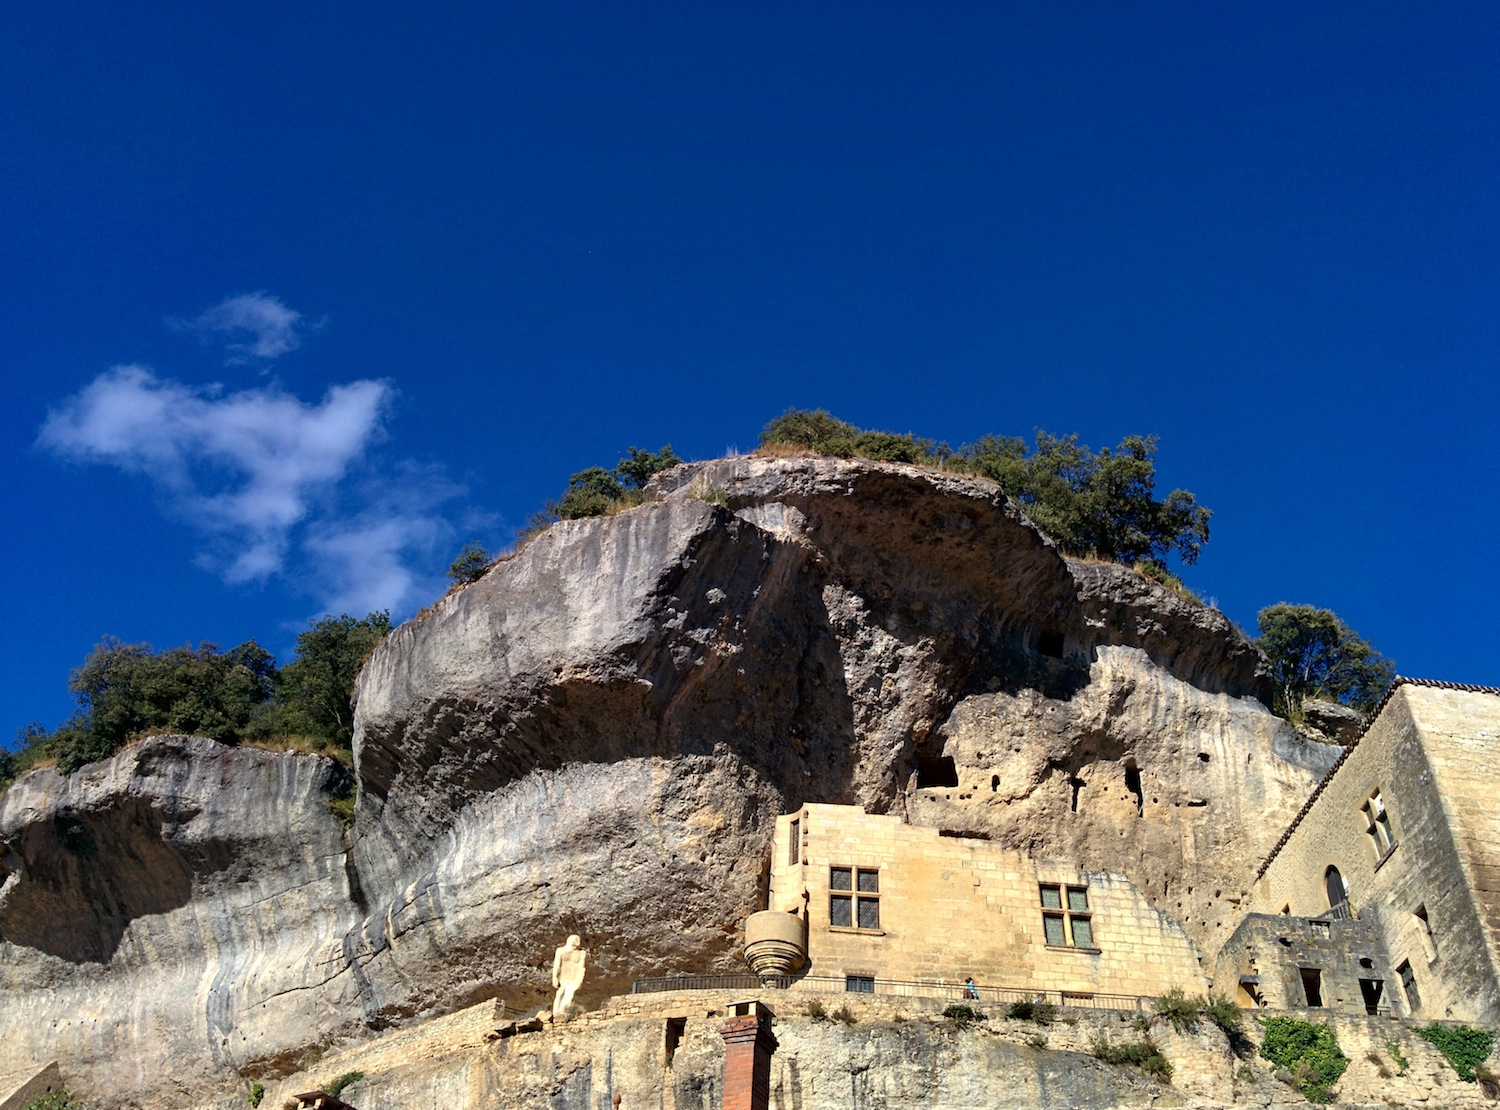 Buildings merge with the cliffs at Les Eyzies, Dordogne, France.